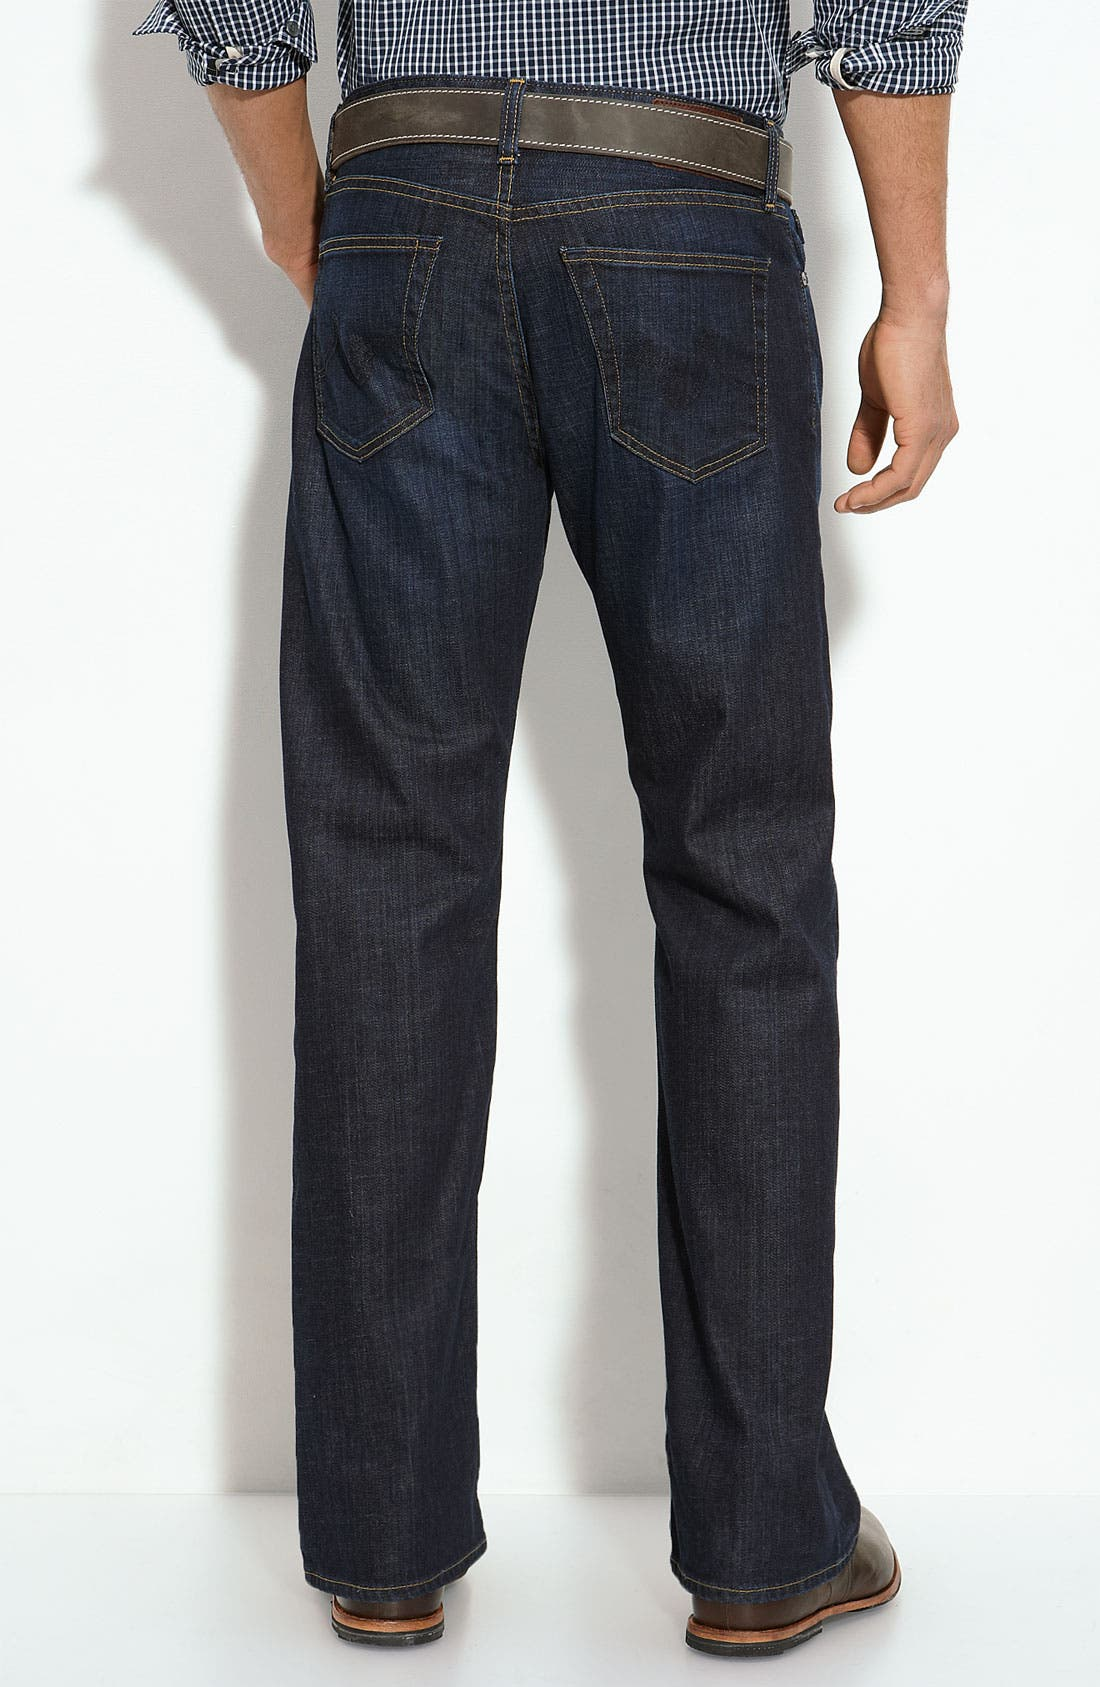 Jeans 'Hero' Relaxed Fit Jeans, Main, color, 403